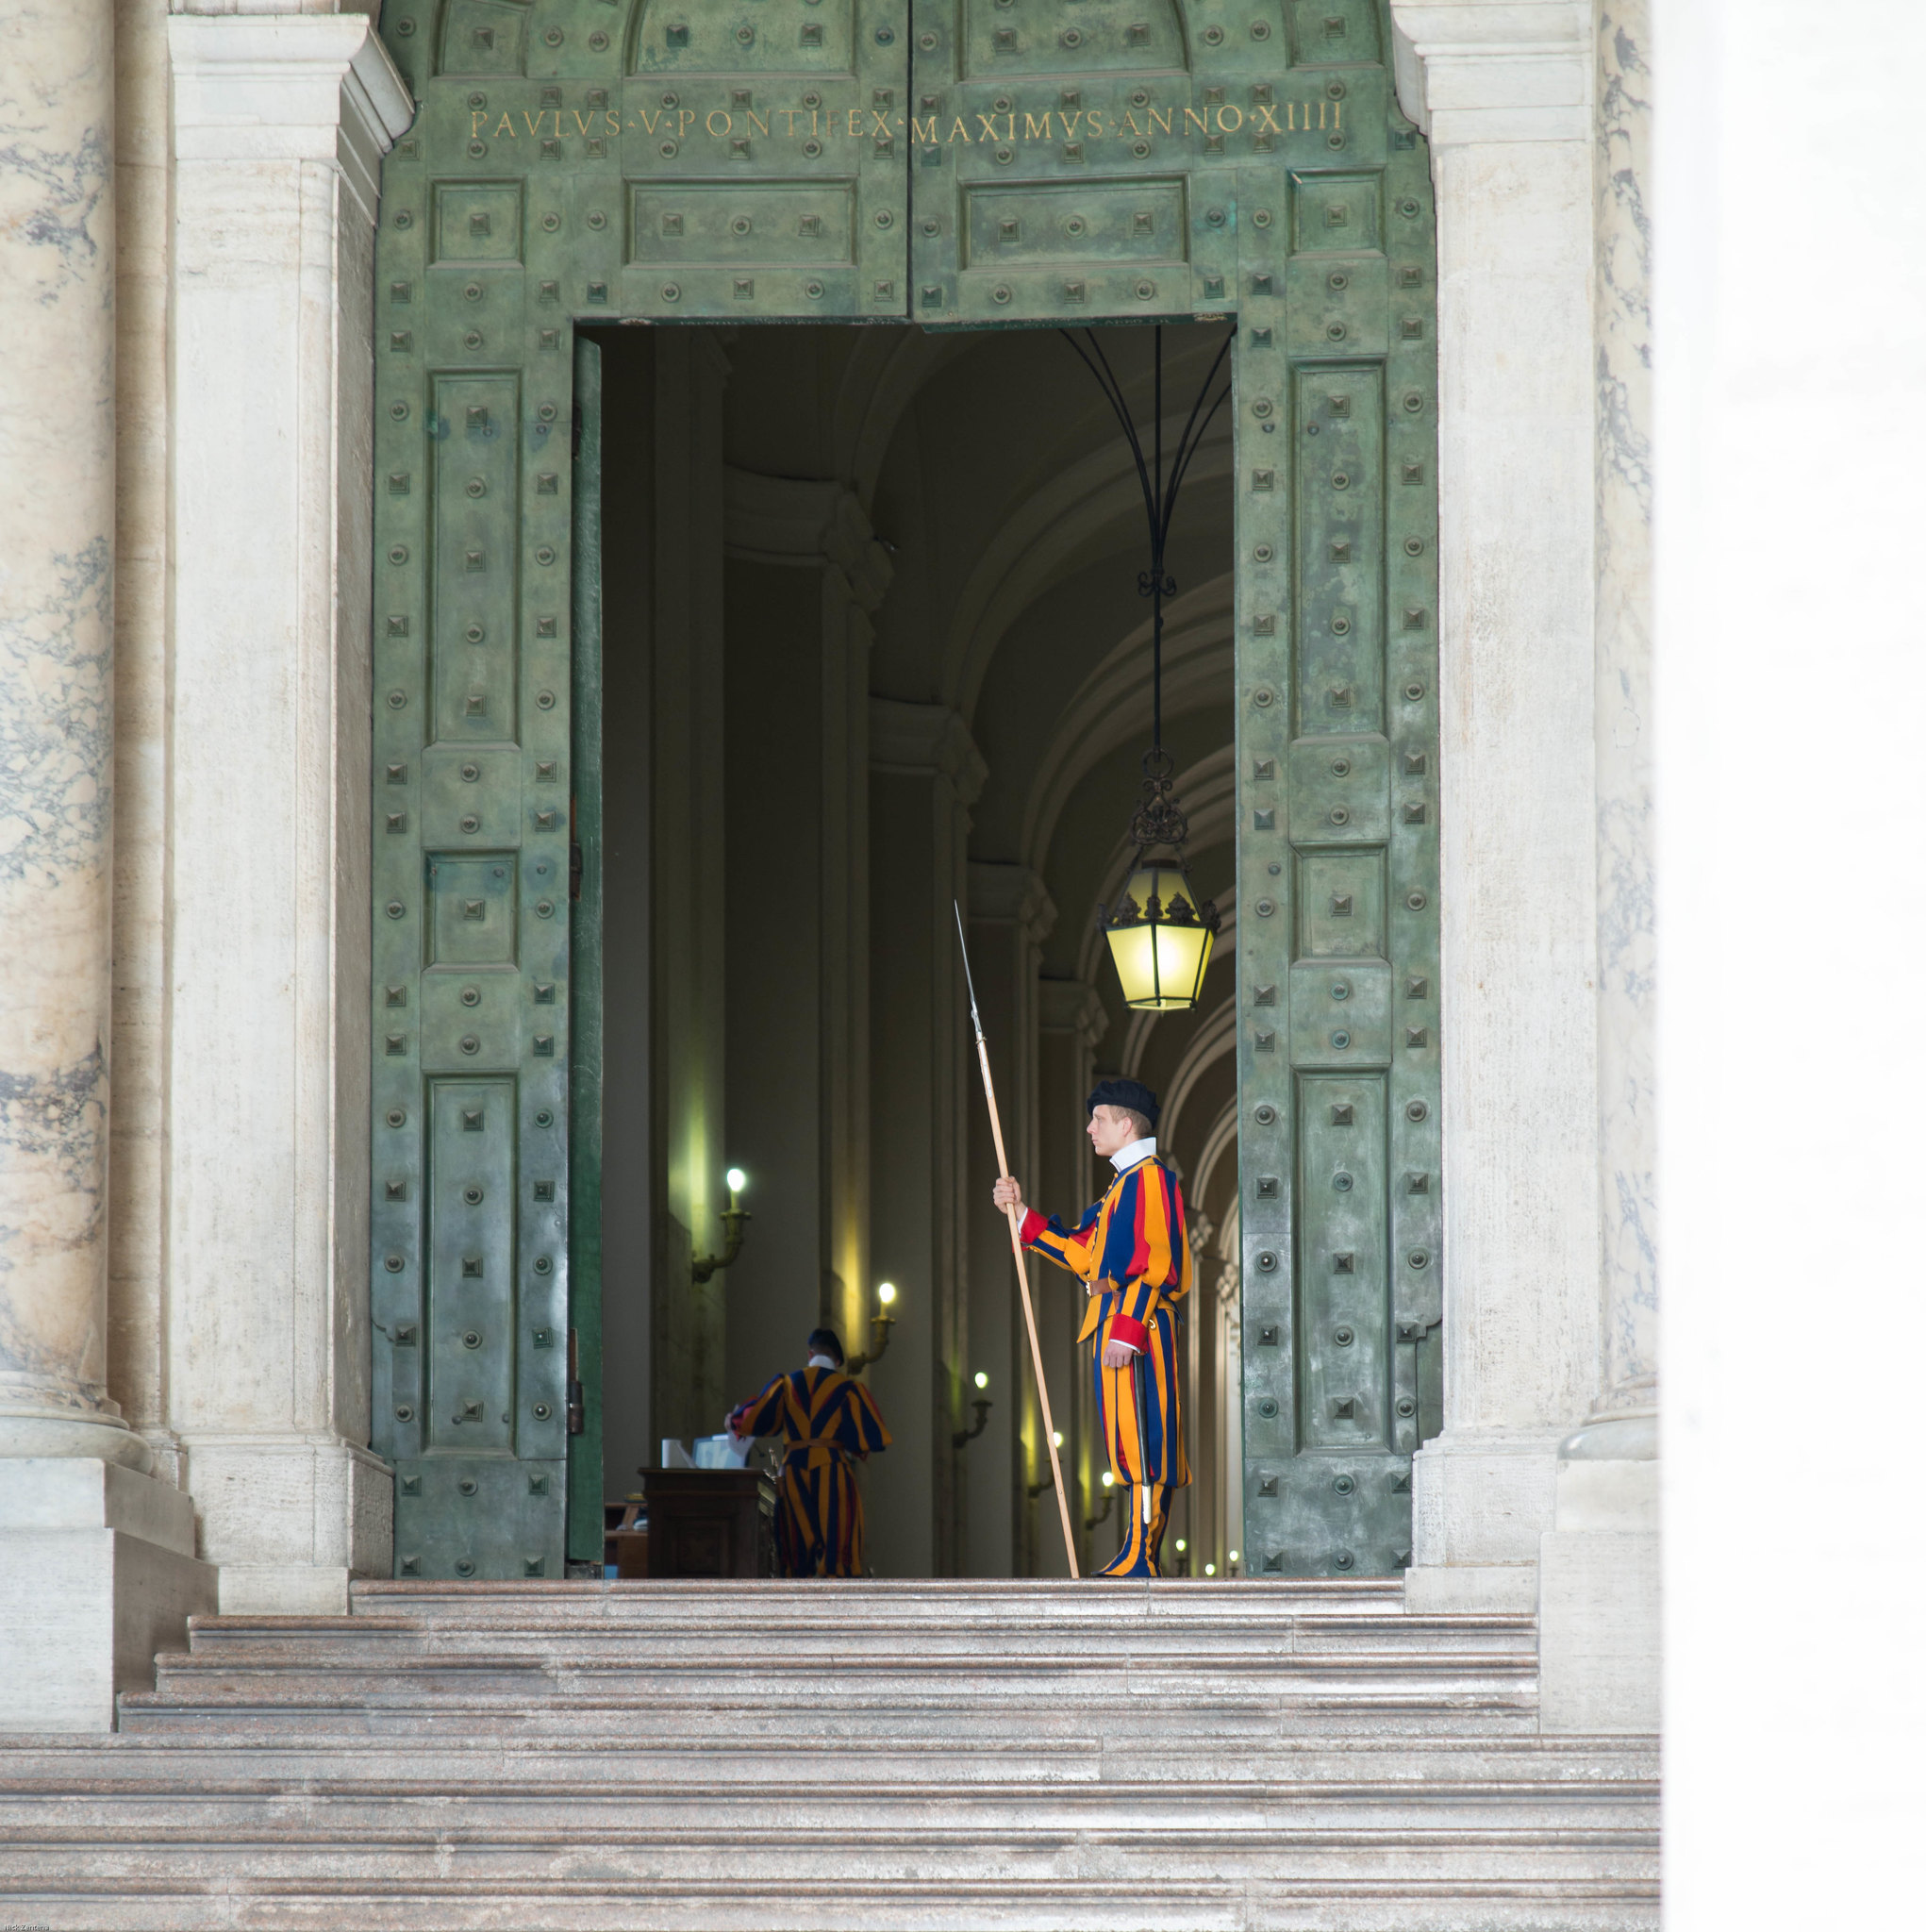 Vatican swiss guard at his post